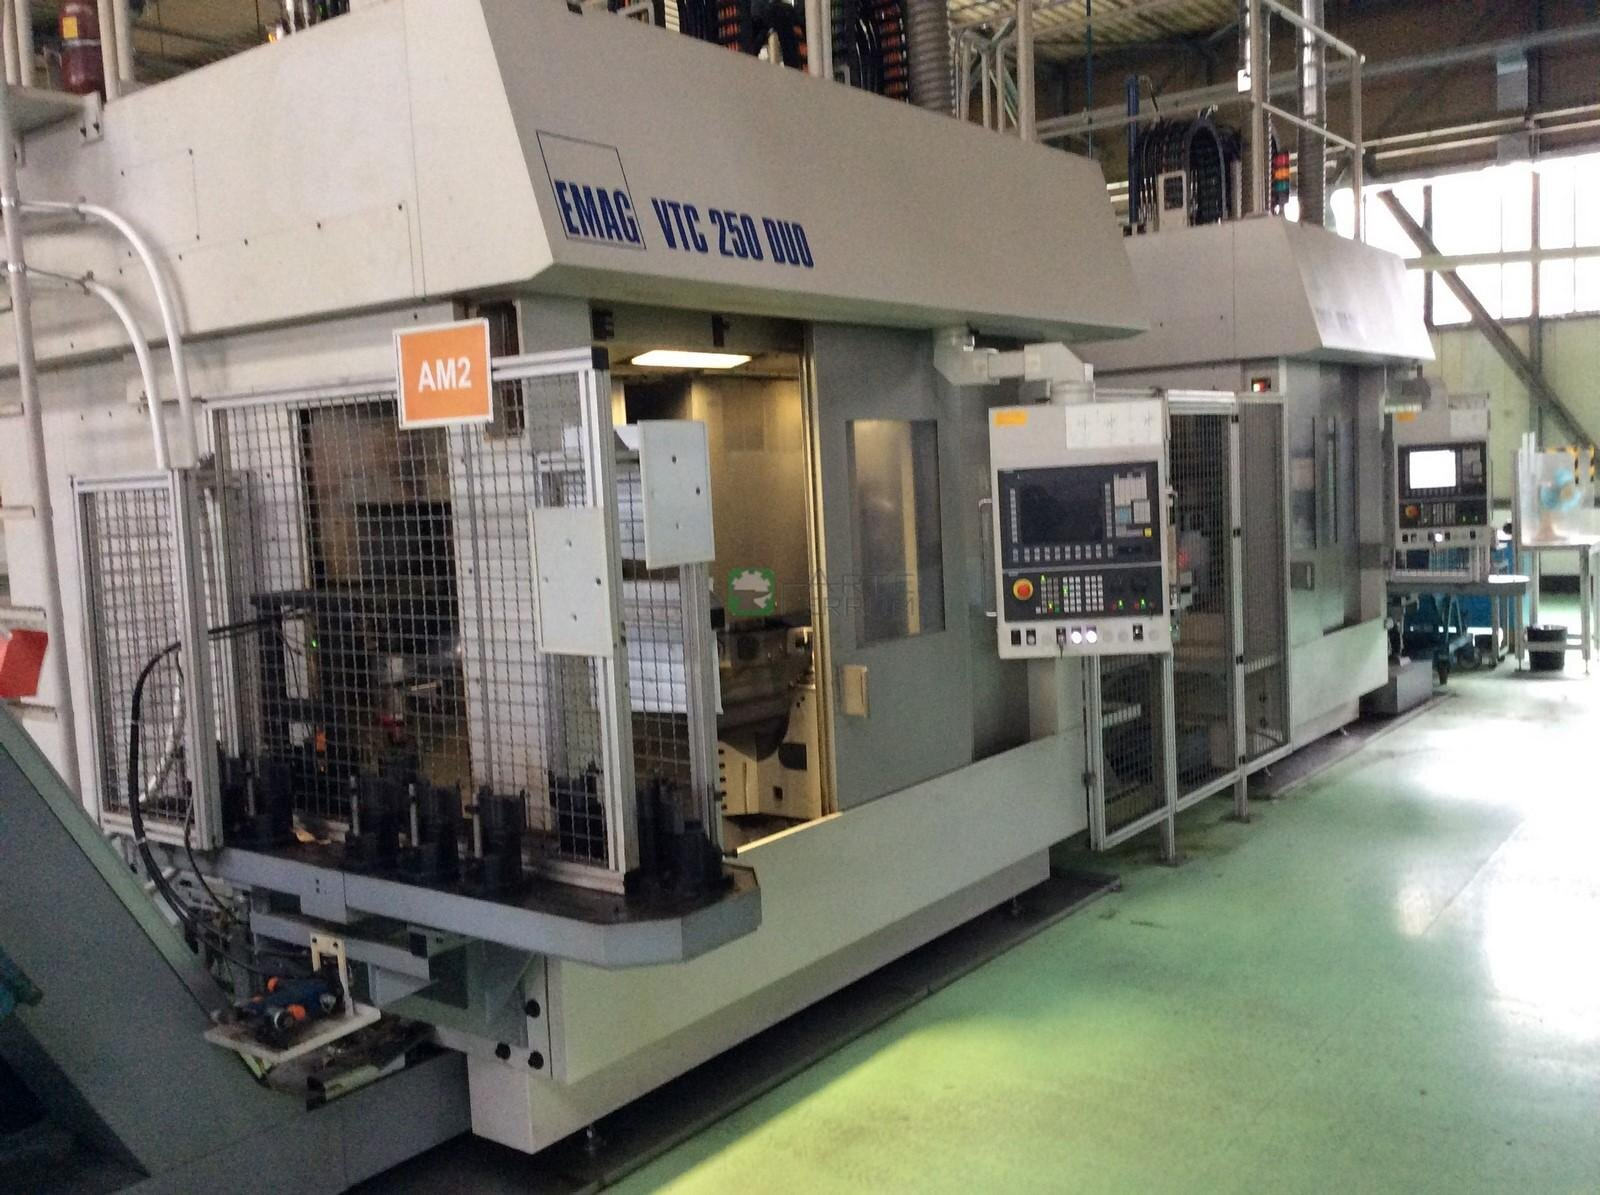 EMAG VTC 250 DUO vertical lathe (7)77